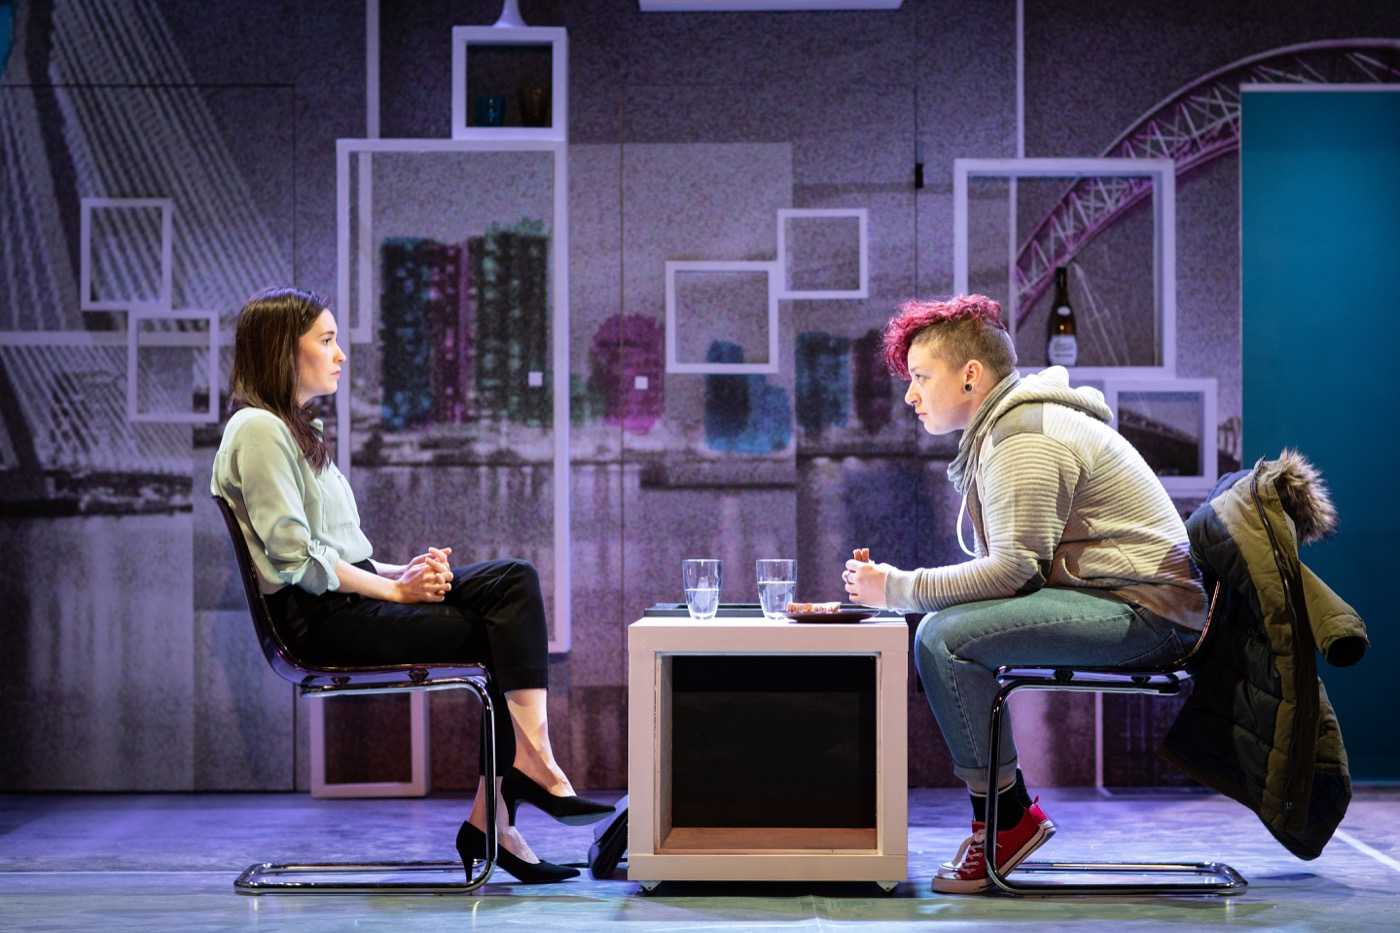 Bethan Cullinane as Alice and Lucy Jane Parkinson as Fiona/Adrian in Rotterdam